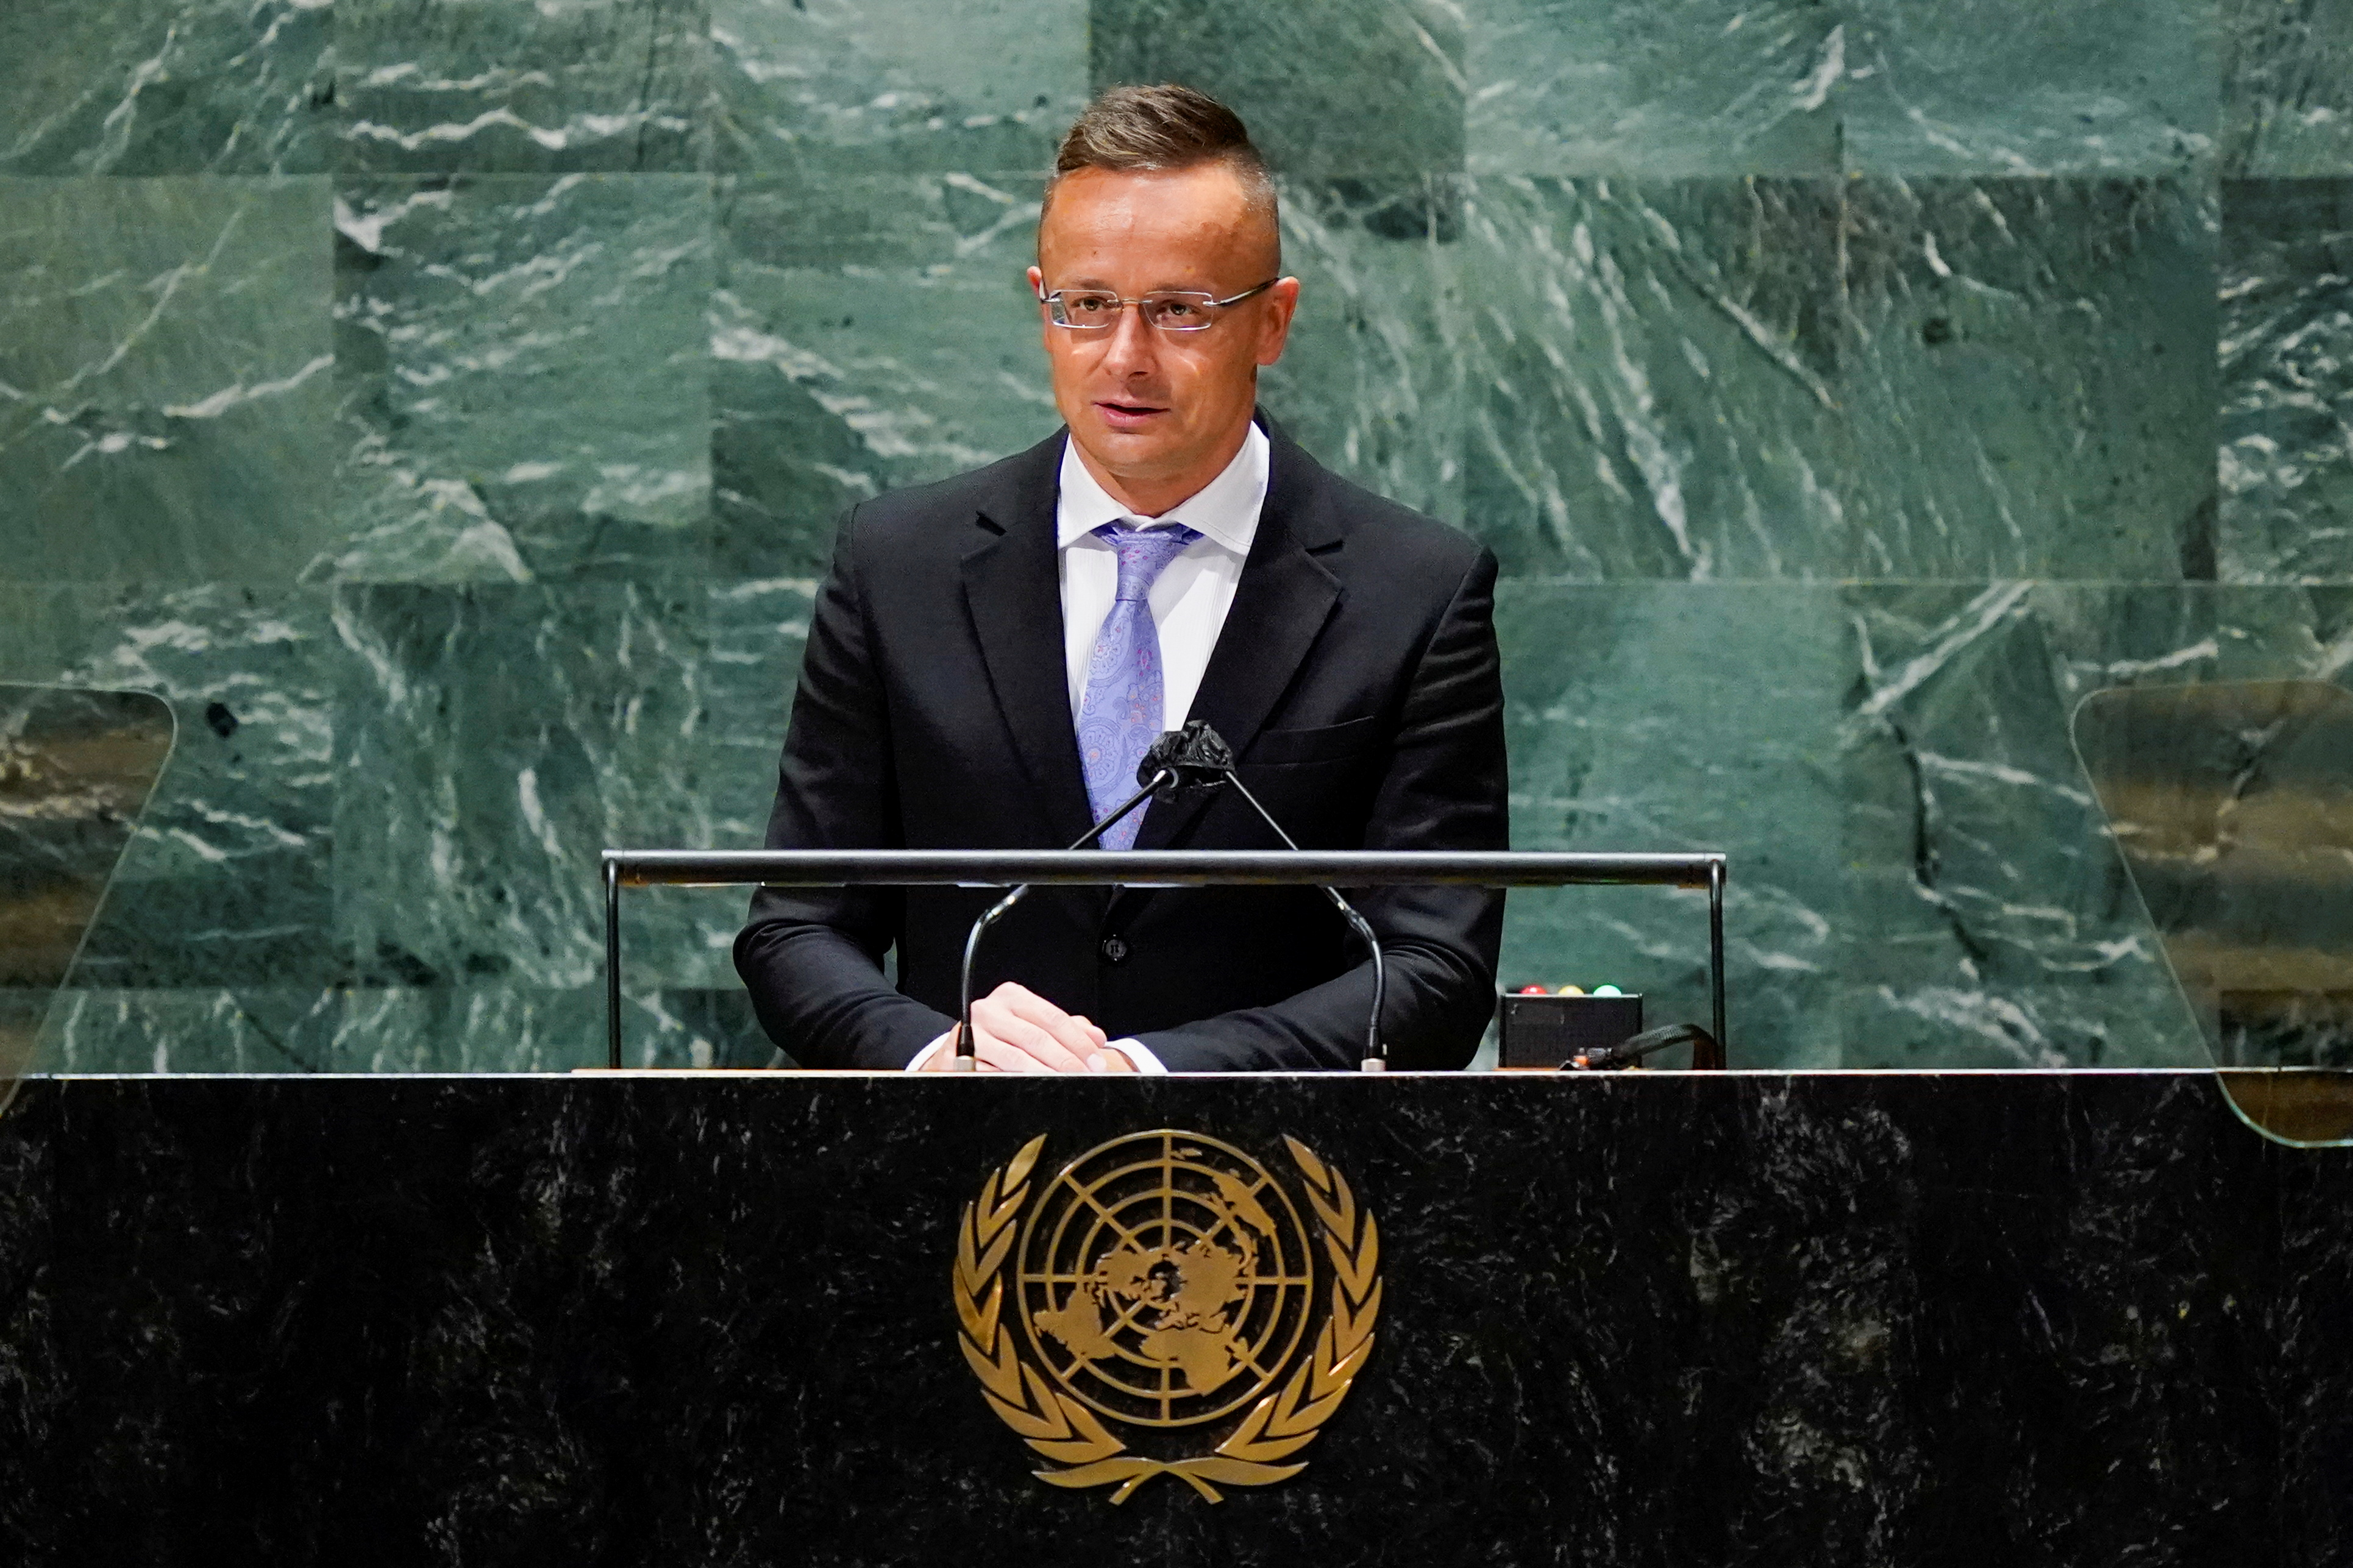 Hungary's Foreign Minister Peter Szijjarto addresses the 76th Session of the United Nations General Assembly, at the U.N. headquarters in New York, U.S., September 23, 2021. Mary Altaffer/Pool via REUTERS